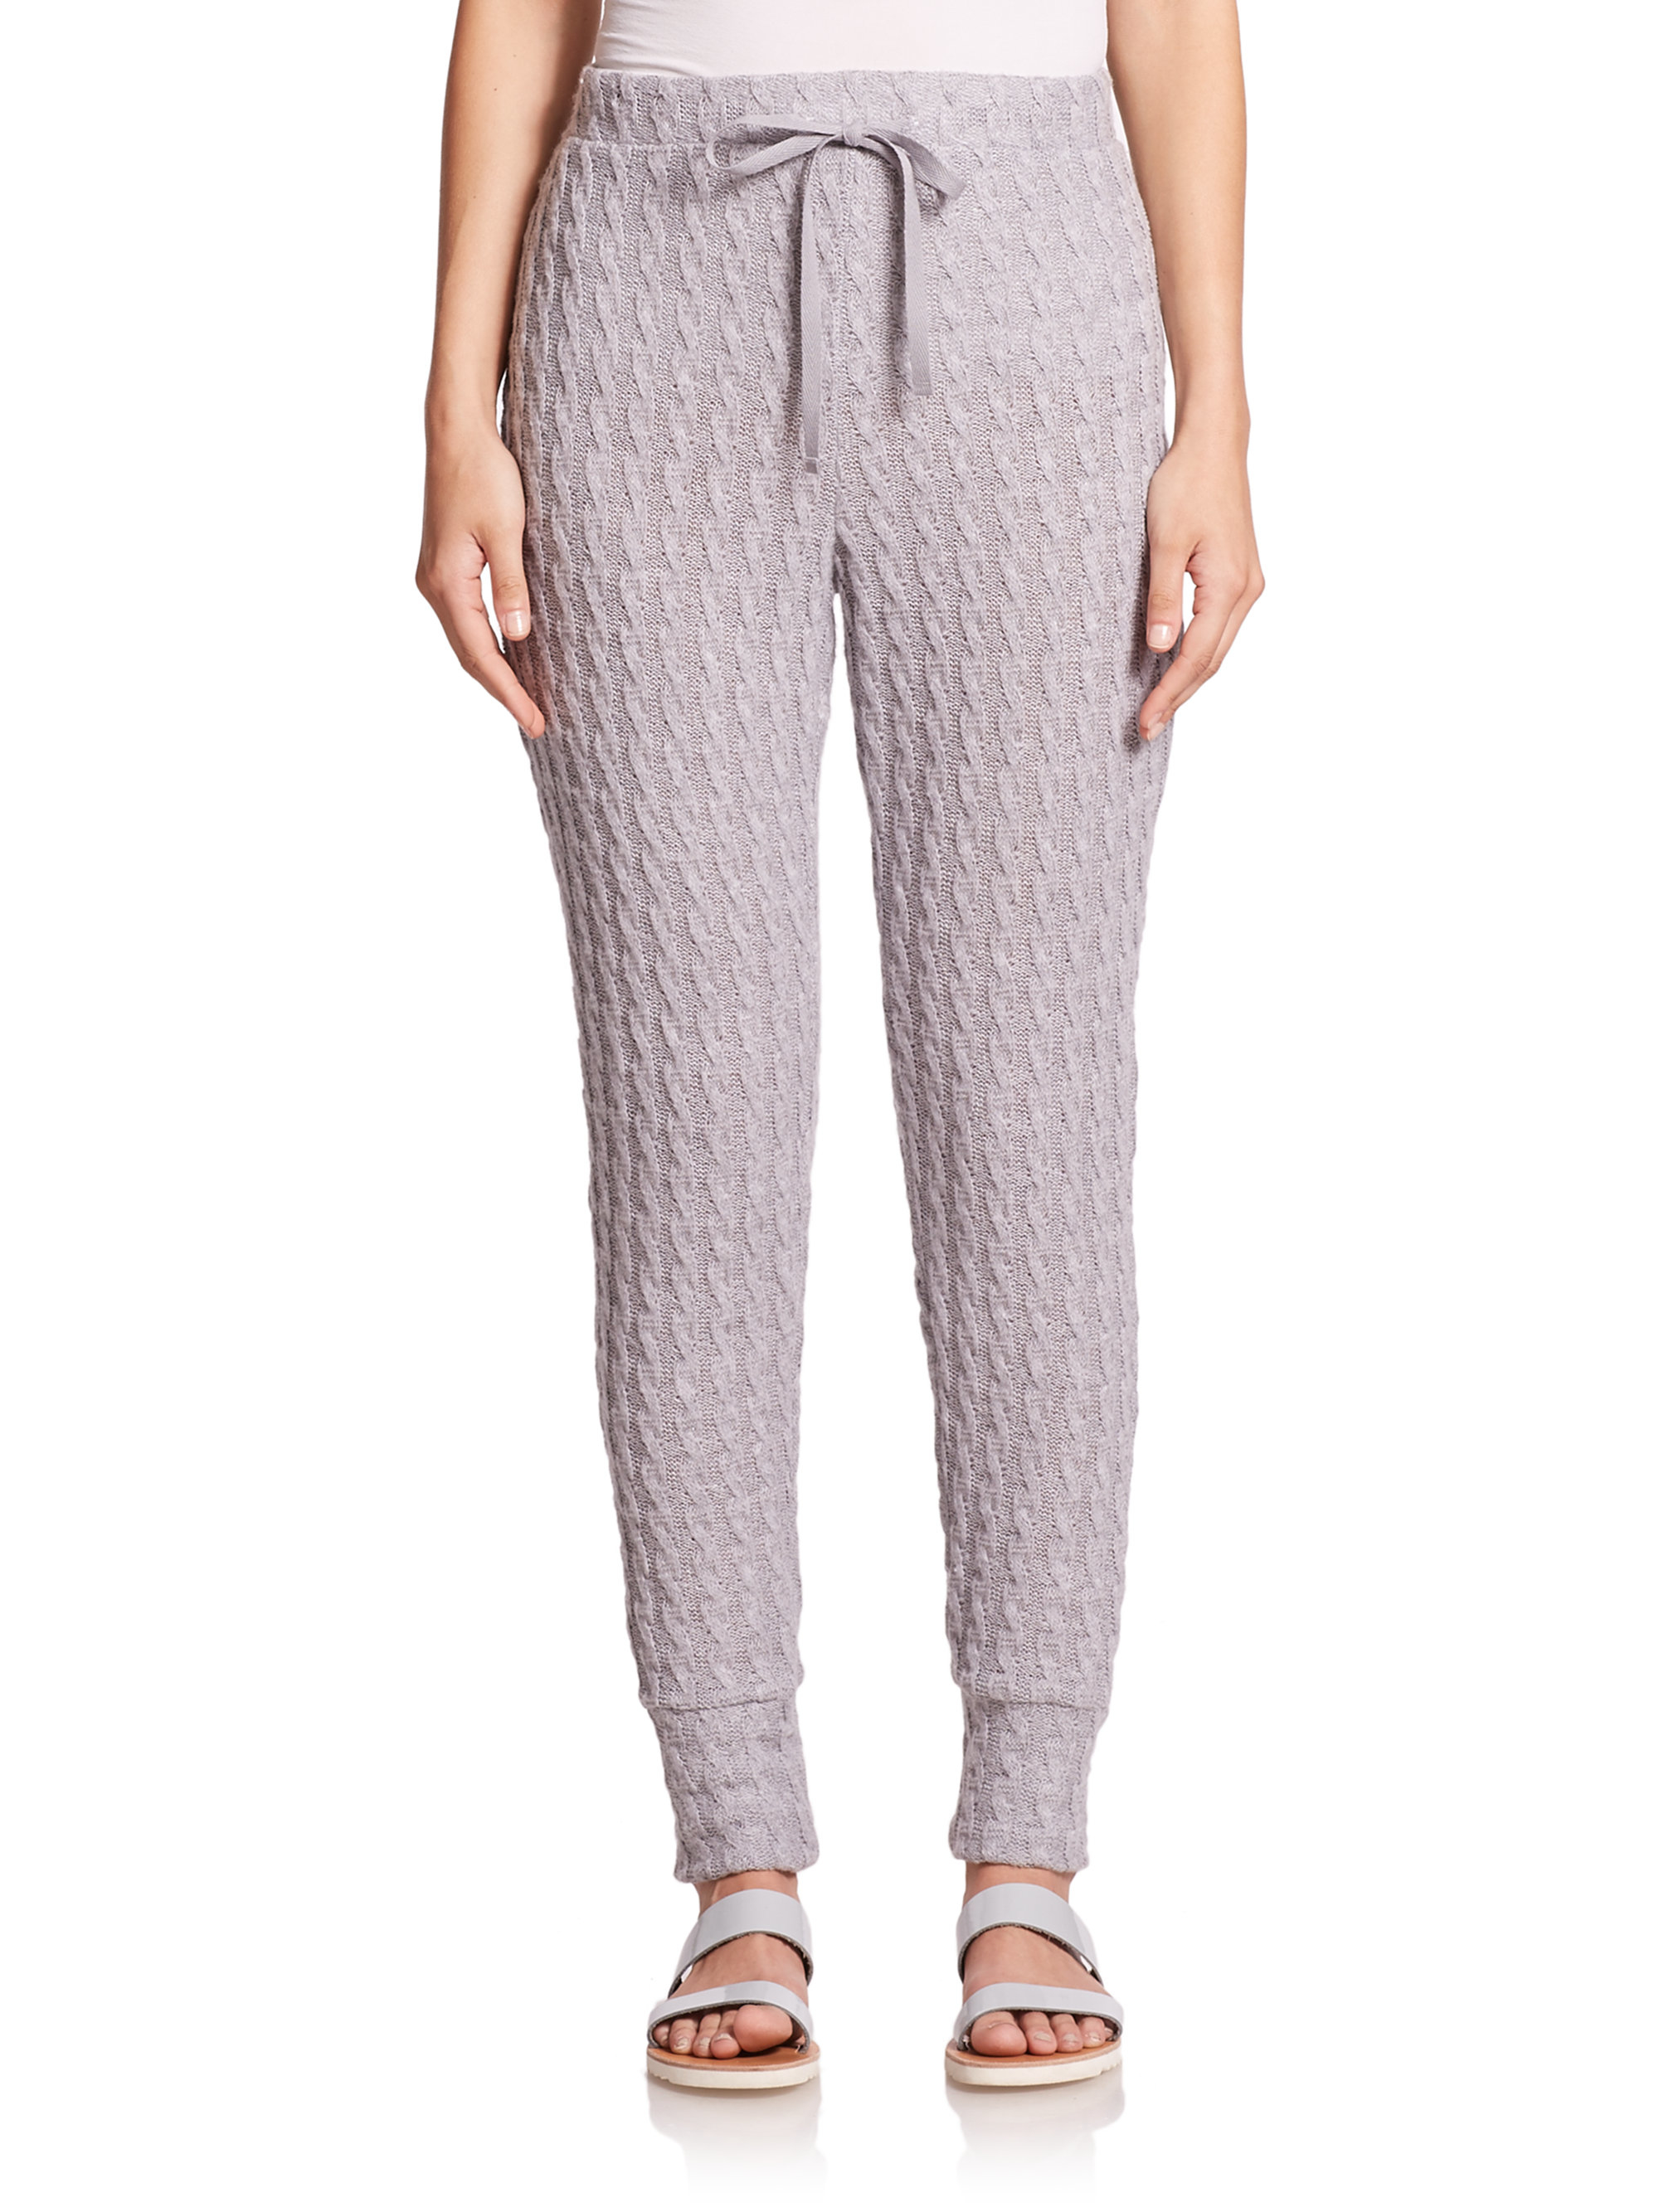 Csbla Jasmin Cable-knit Pants in Gray | Lyst